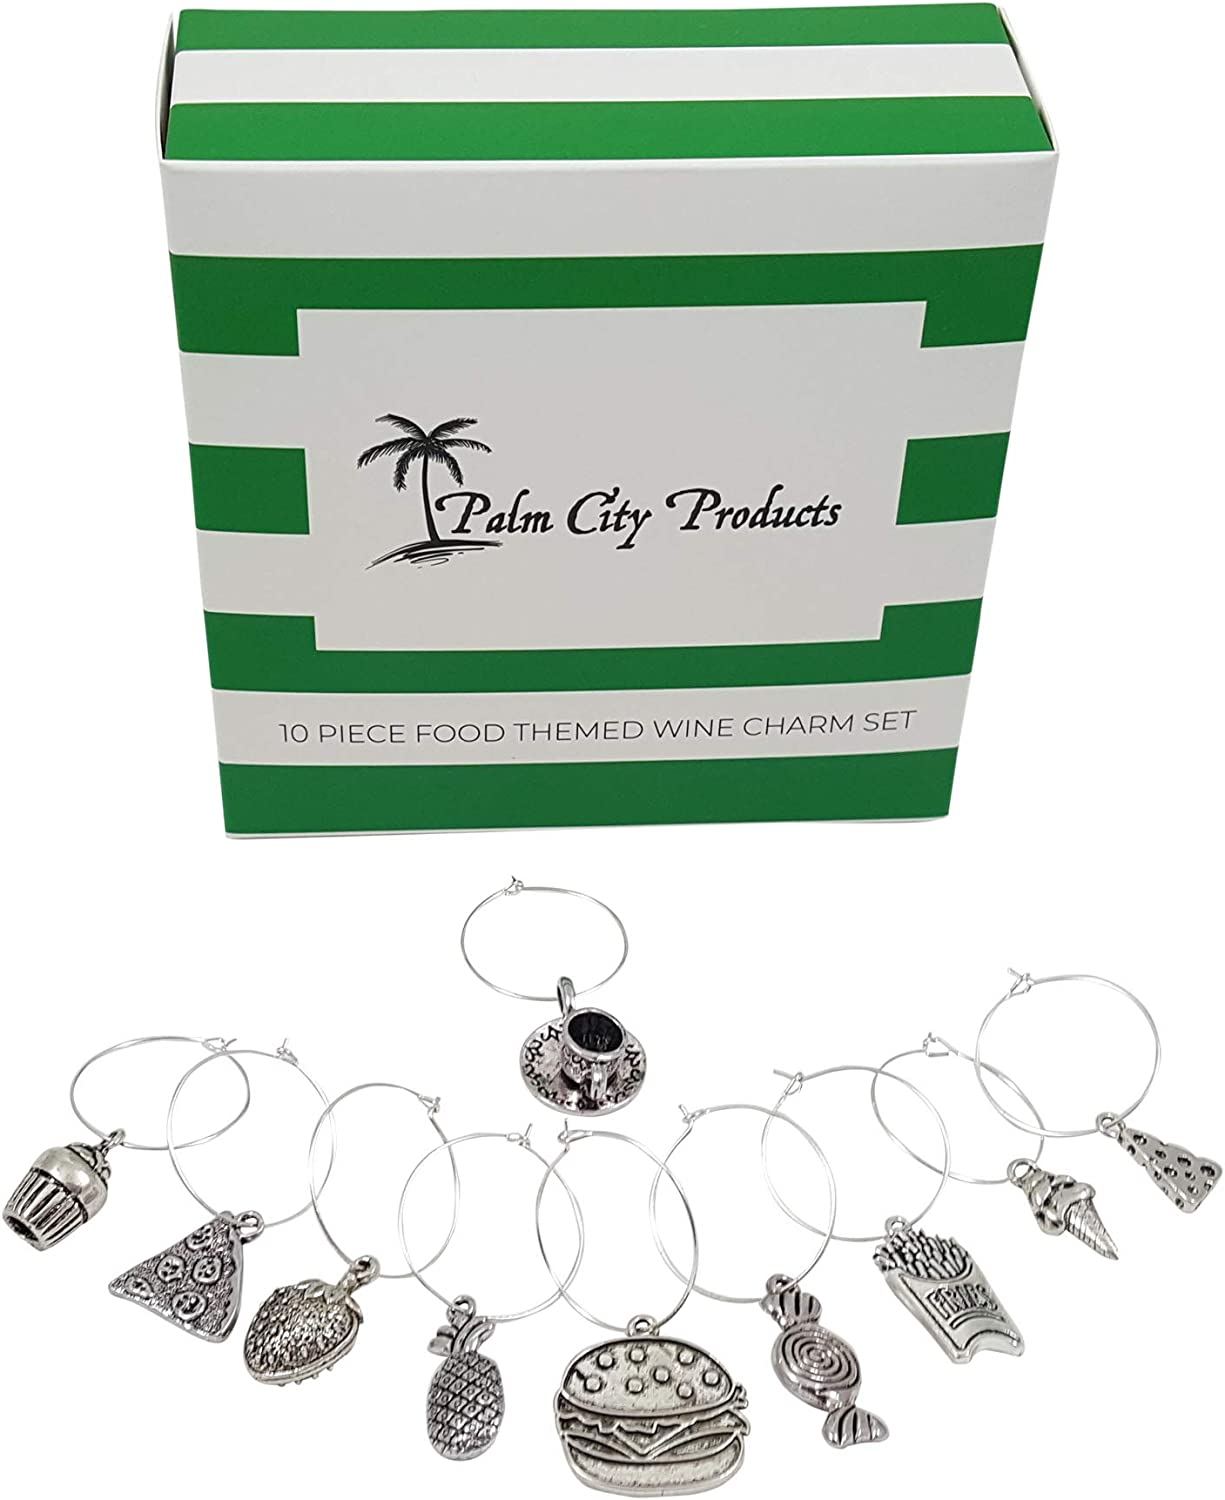 Food Lovers Themed Wine Charms - 10 Piece Wine Charm Set - Great Gift for Foodies